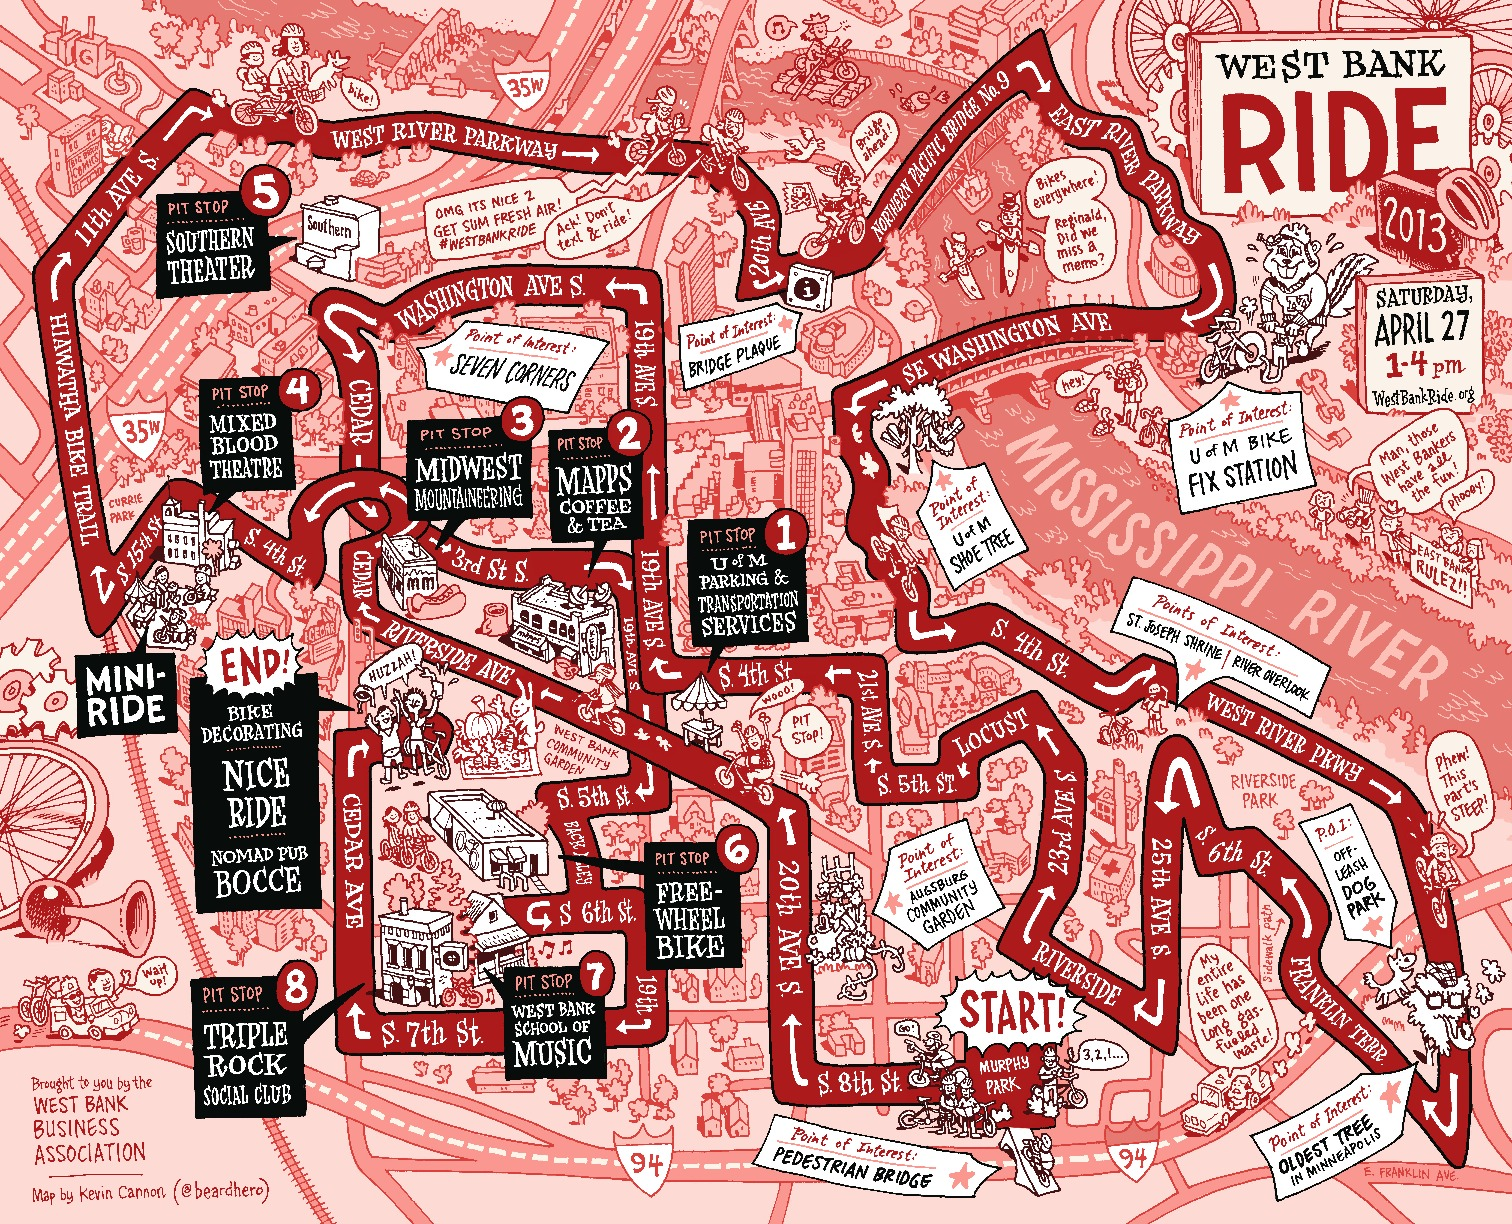 West Bank Ride map with pitstops